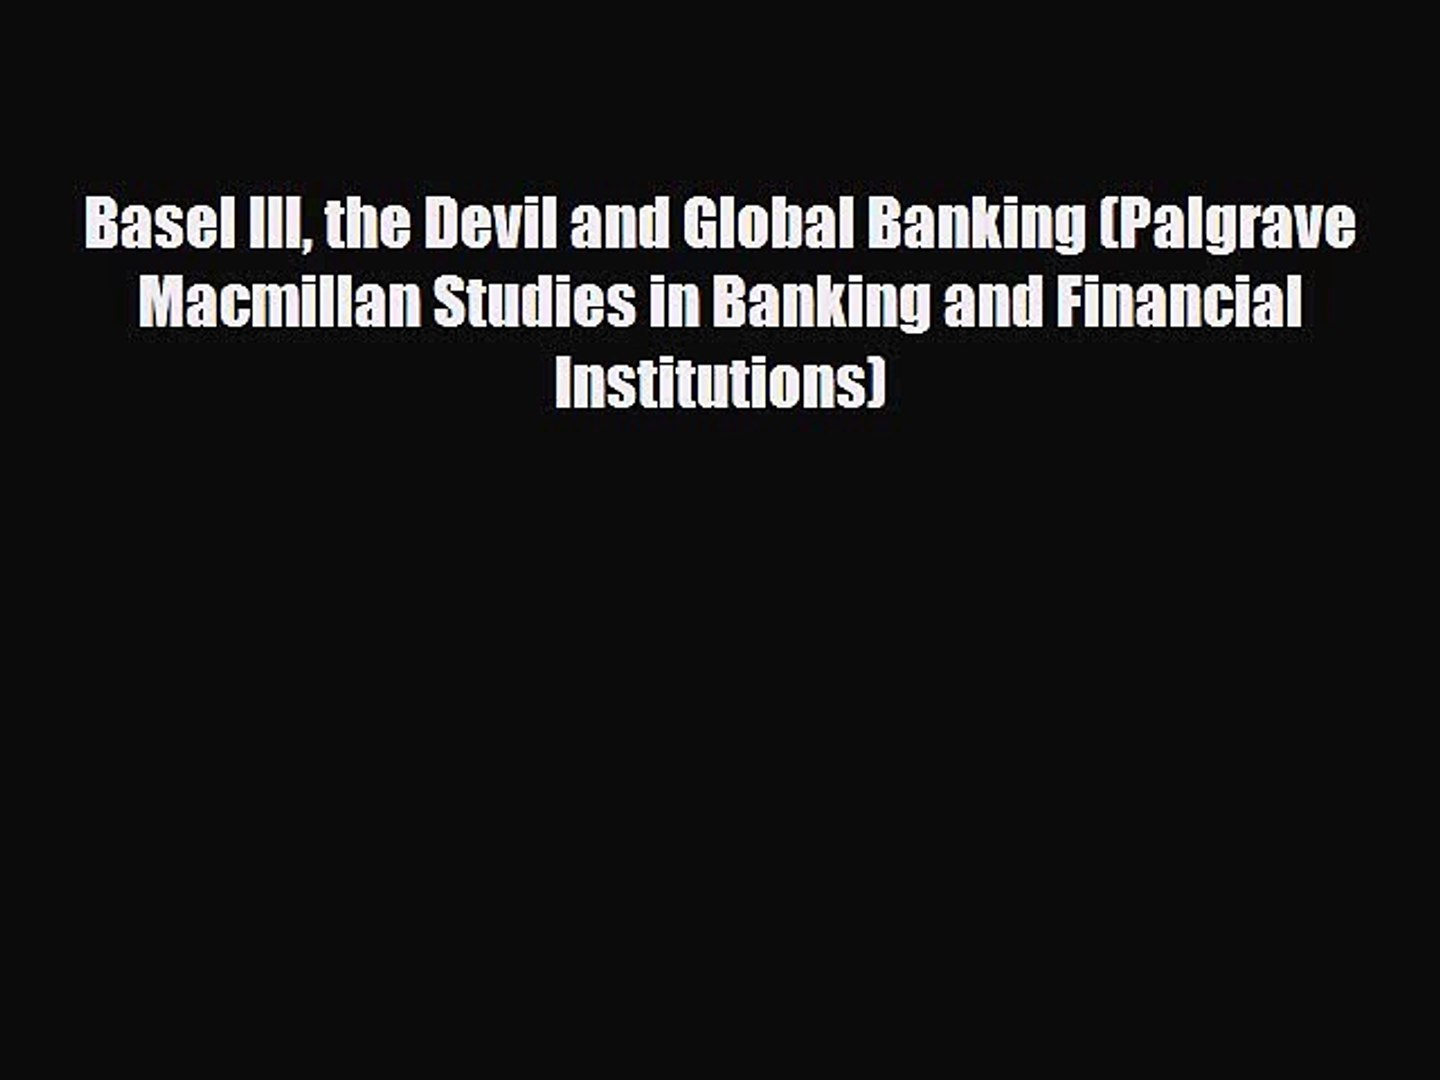 [PDF Download] Basel III the Devil and Global Banking (Palgrave Macmillan Studies in Banking